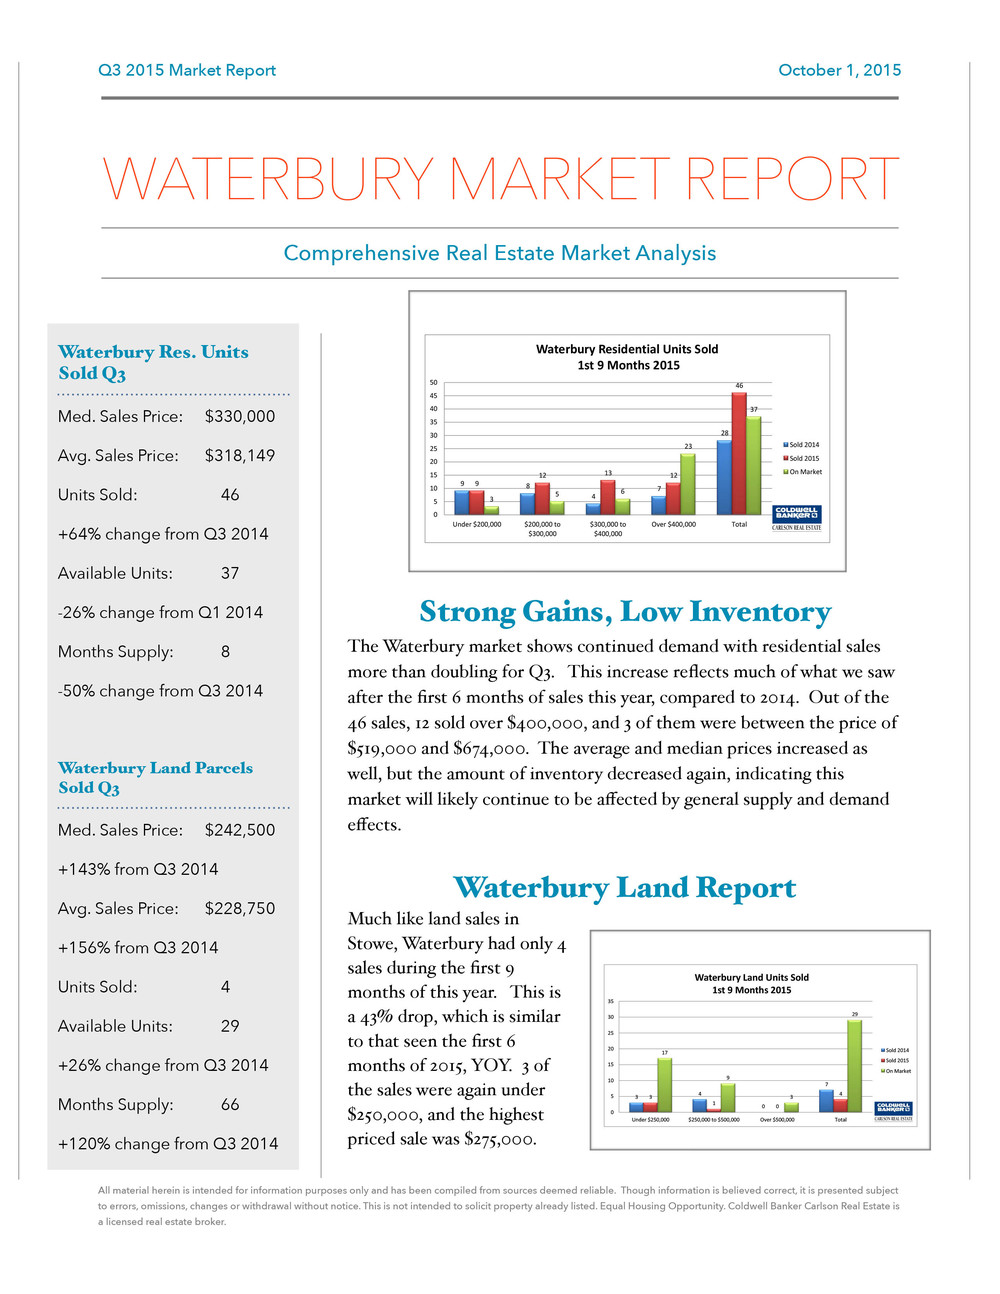 Q3 2015 Market Report Draft Waterbury